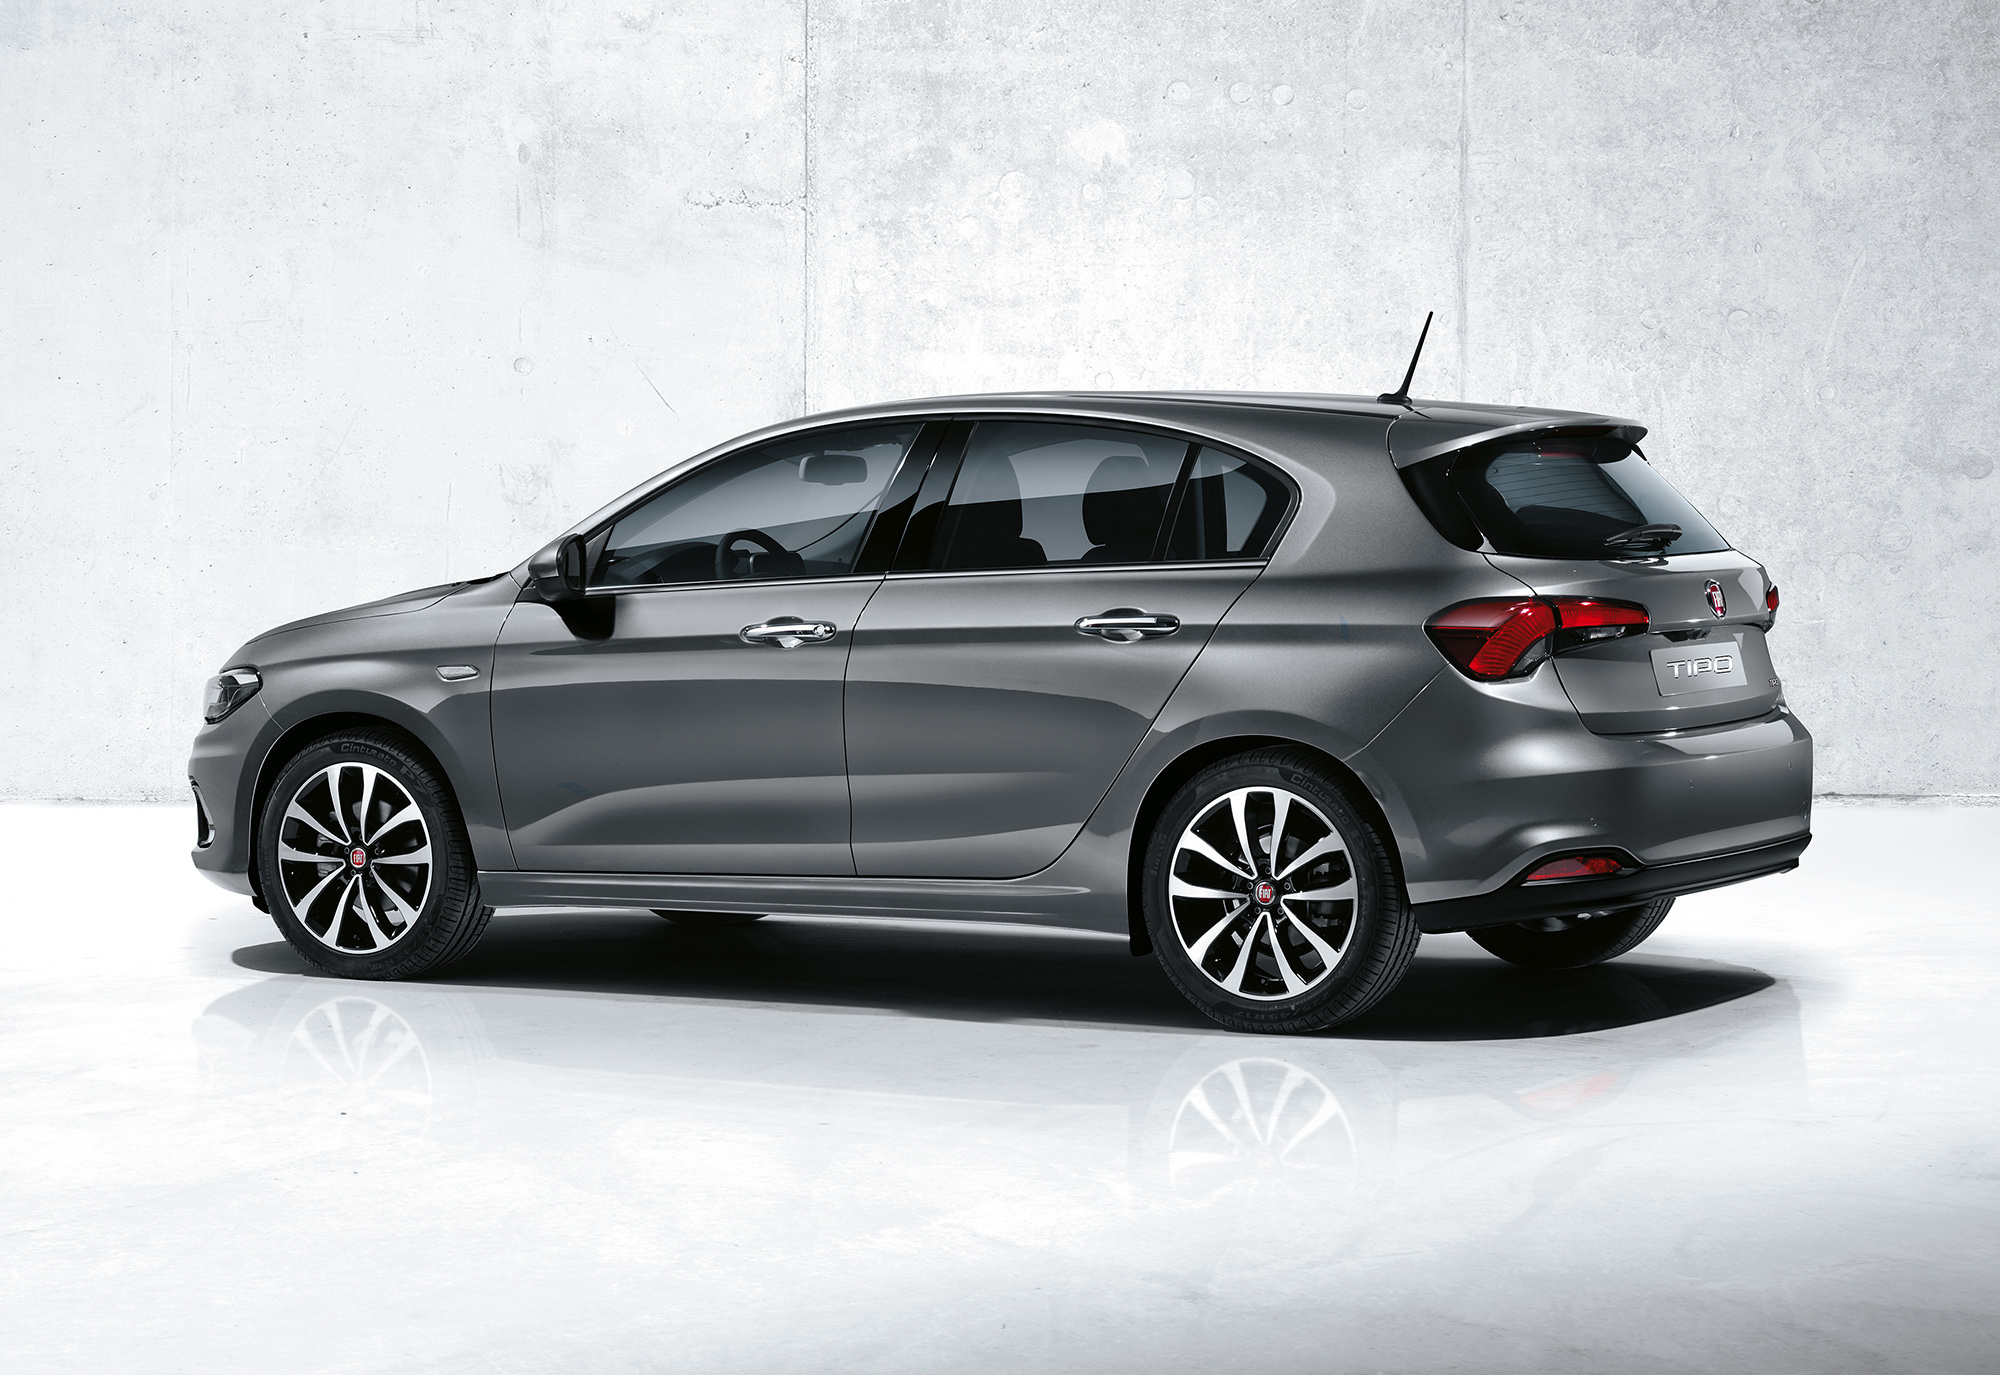 Fiat Tipo Wallpapers HD